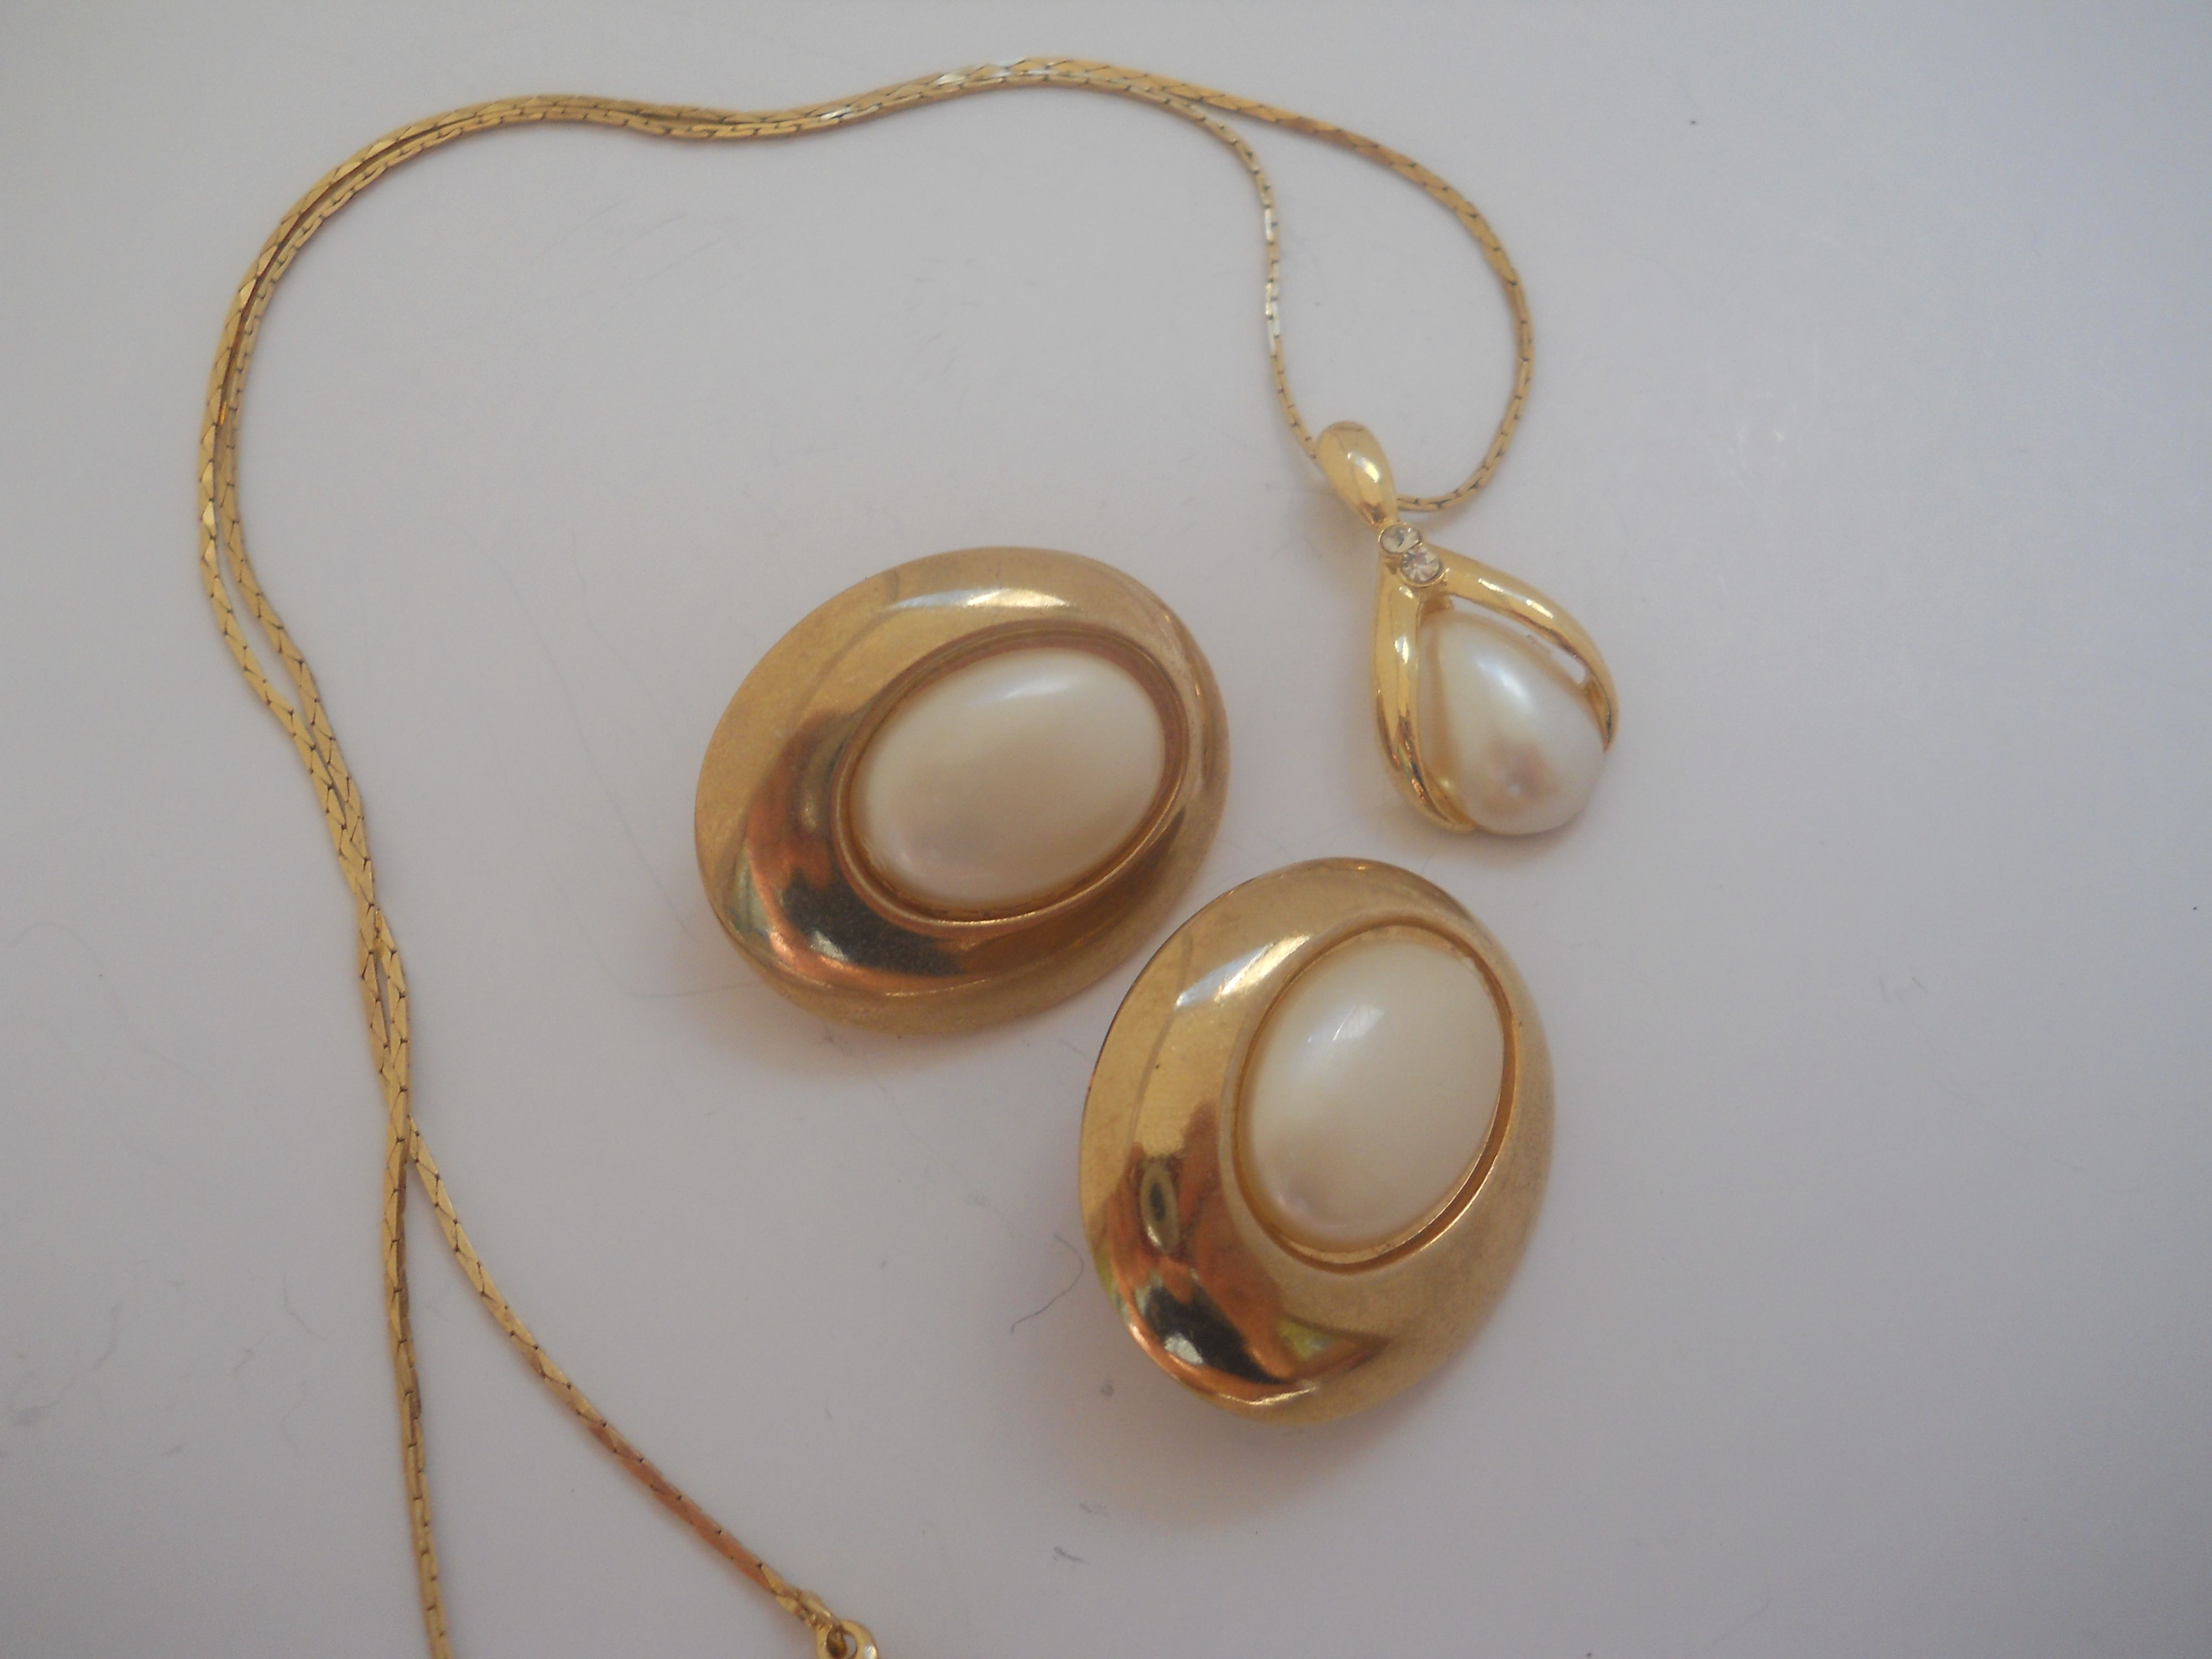 Retro Avon set Believed to be 14k gold but as the only stamp says